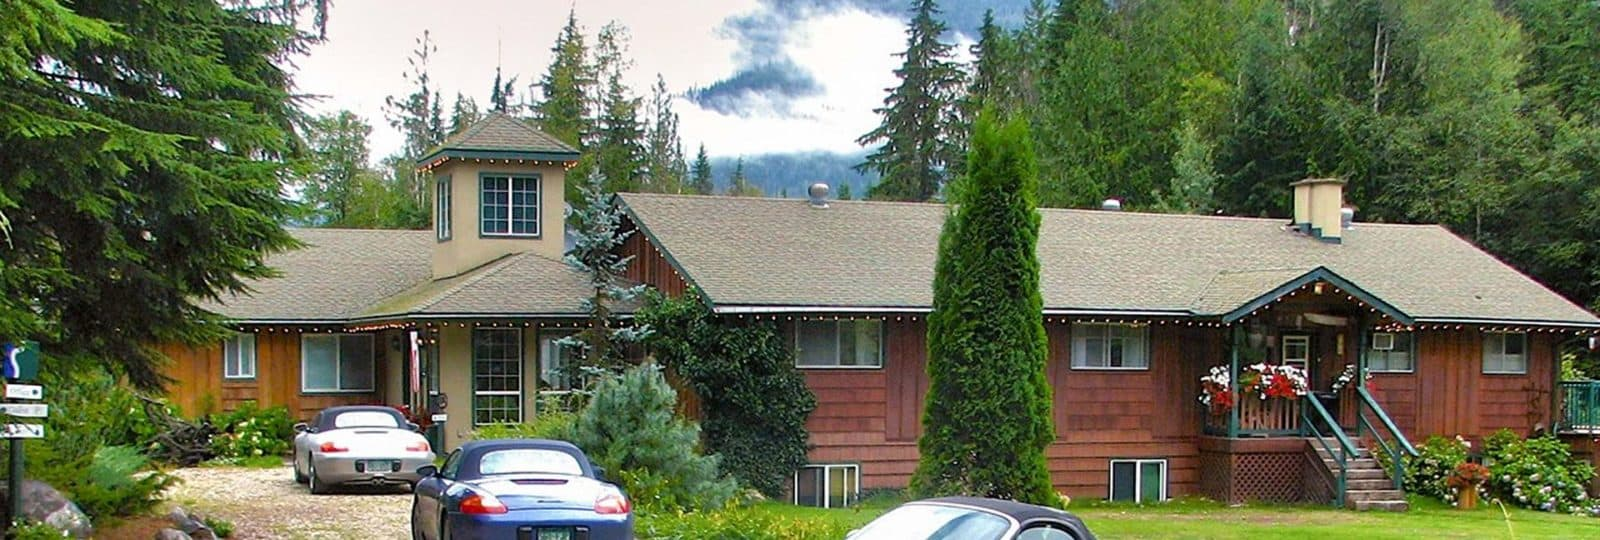 B&B bei Revelstoke am Arrow Lake